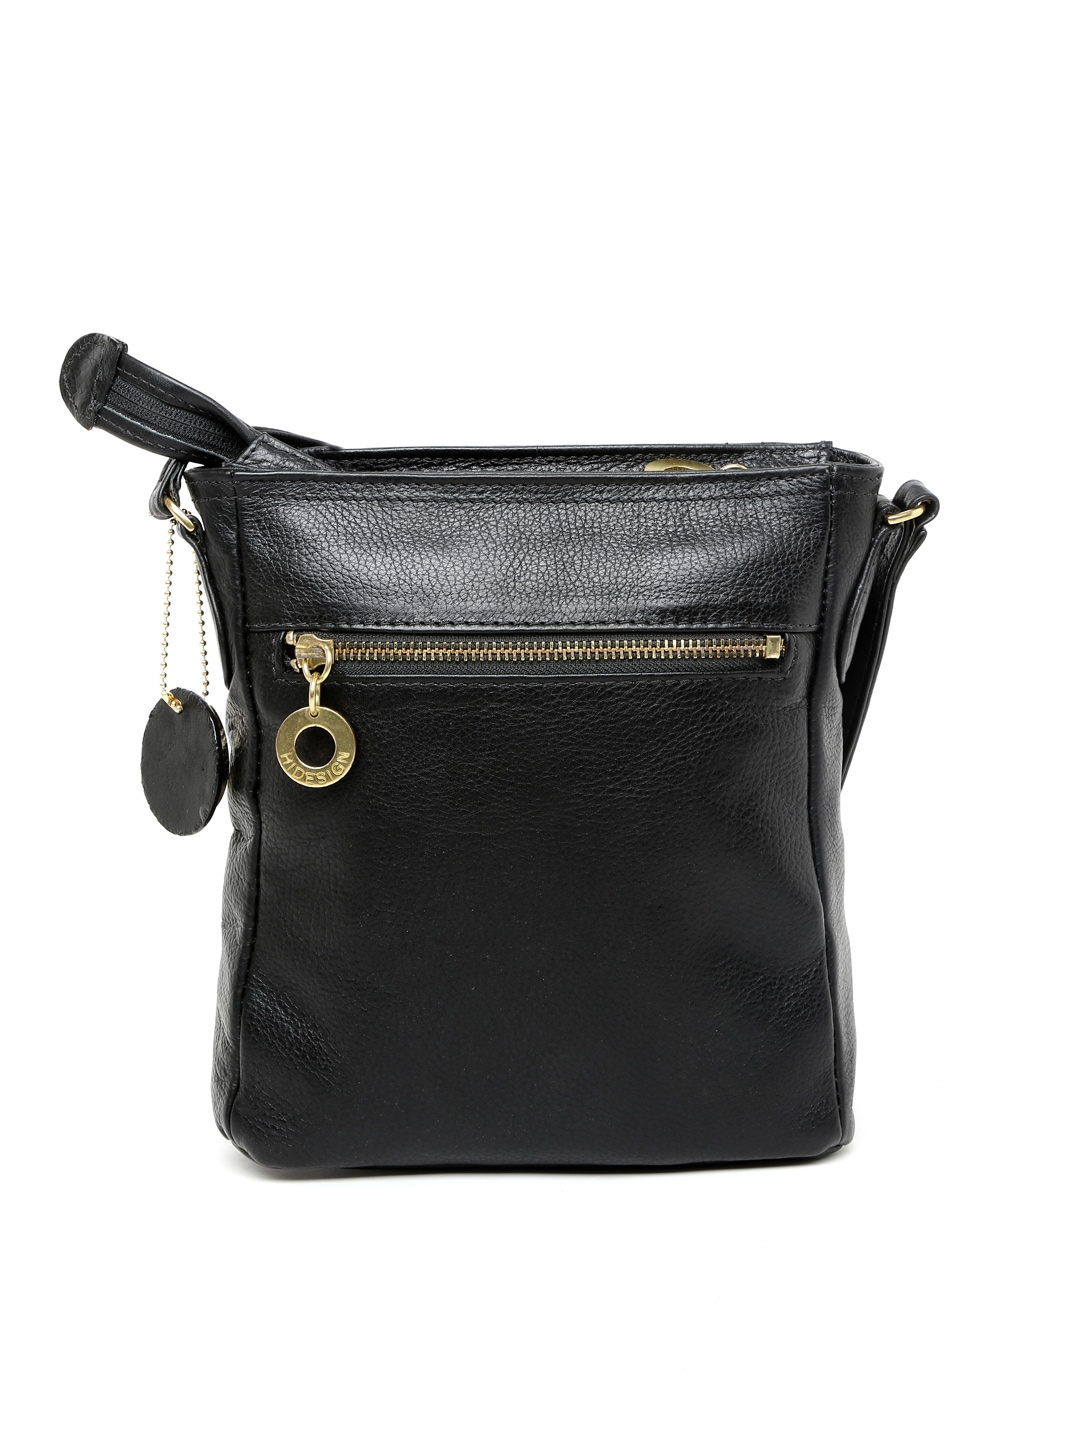 Free shipping BOTH ways on leather sling bags women, from our vast selection of styles. Fast delivery, and 24/7/ real-person service with a smile. Click or call